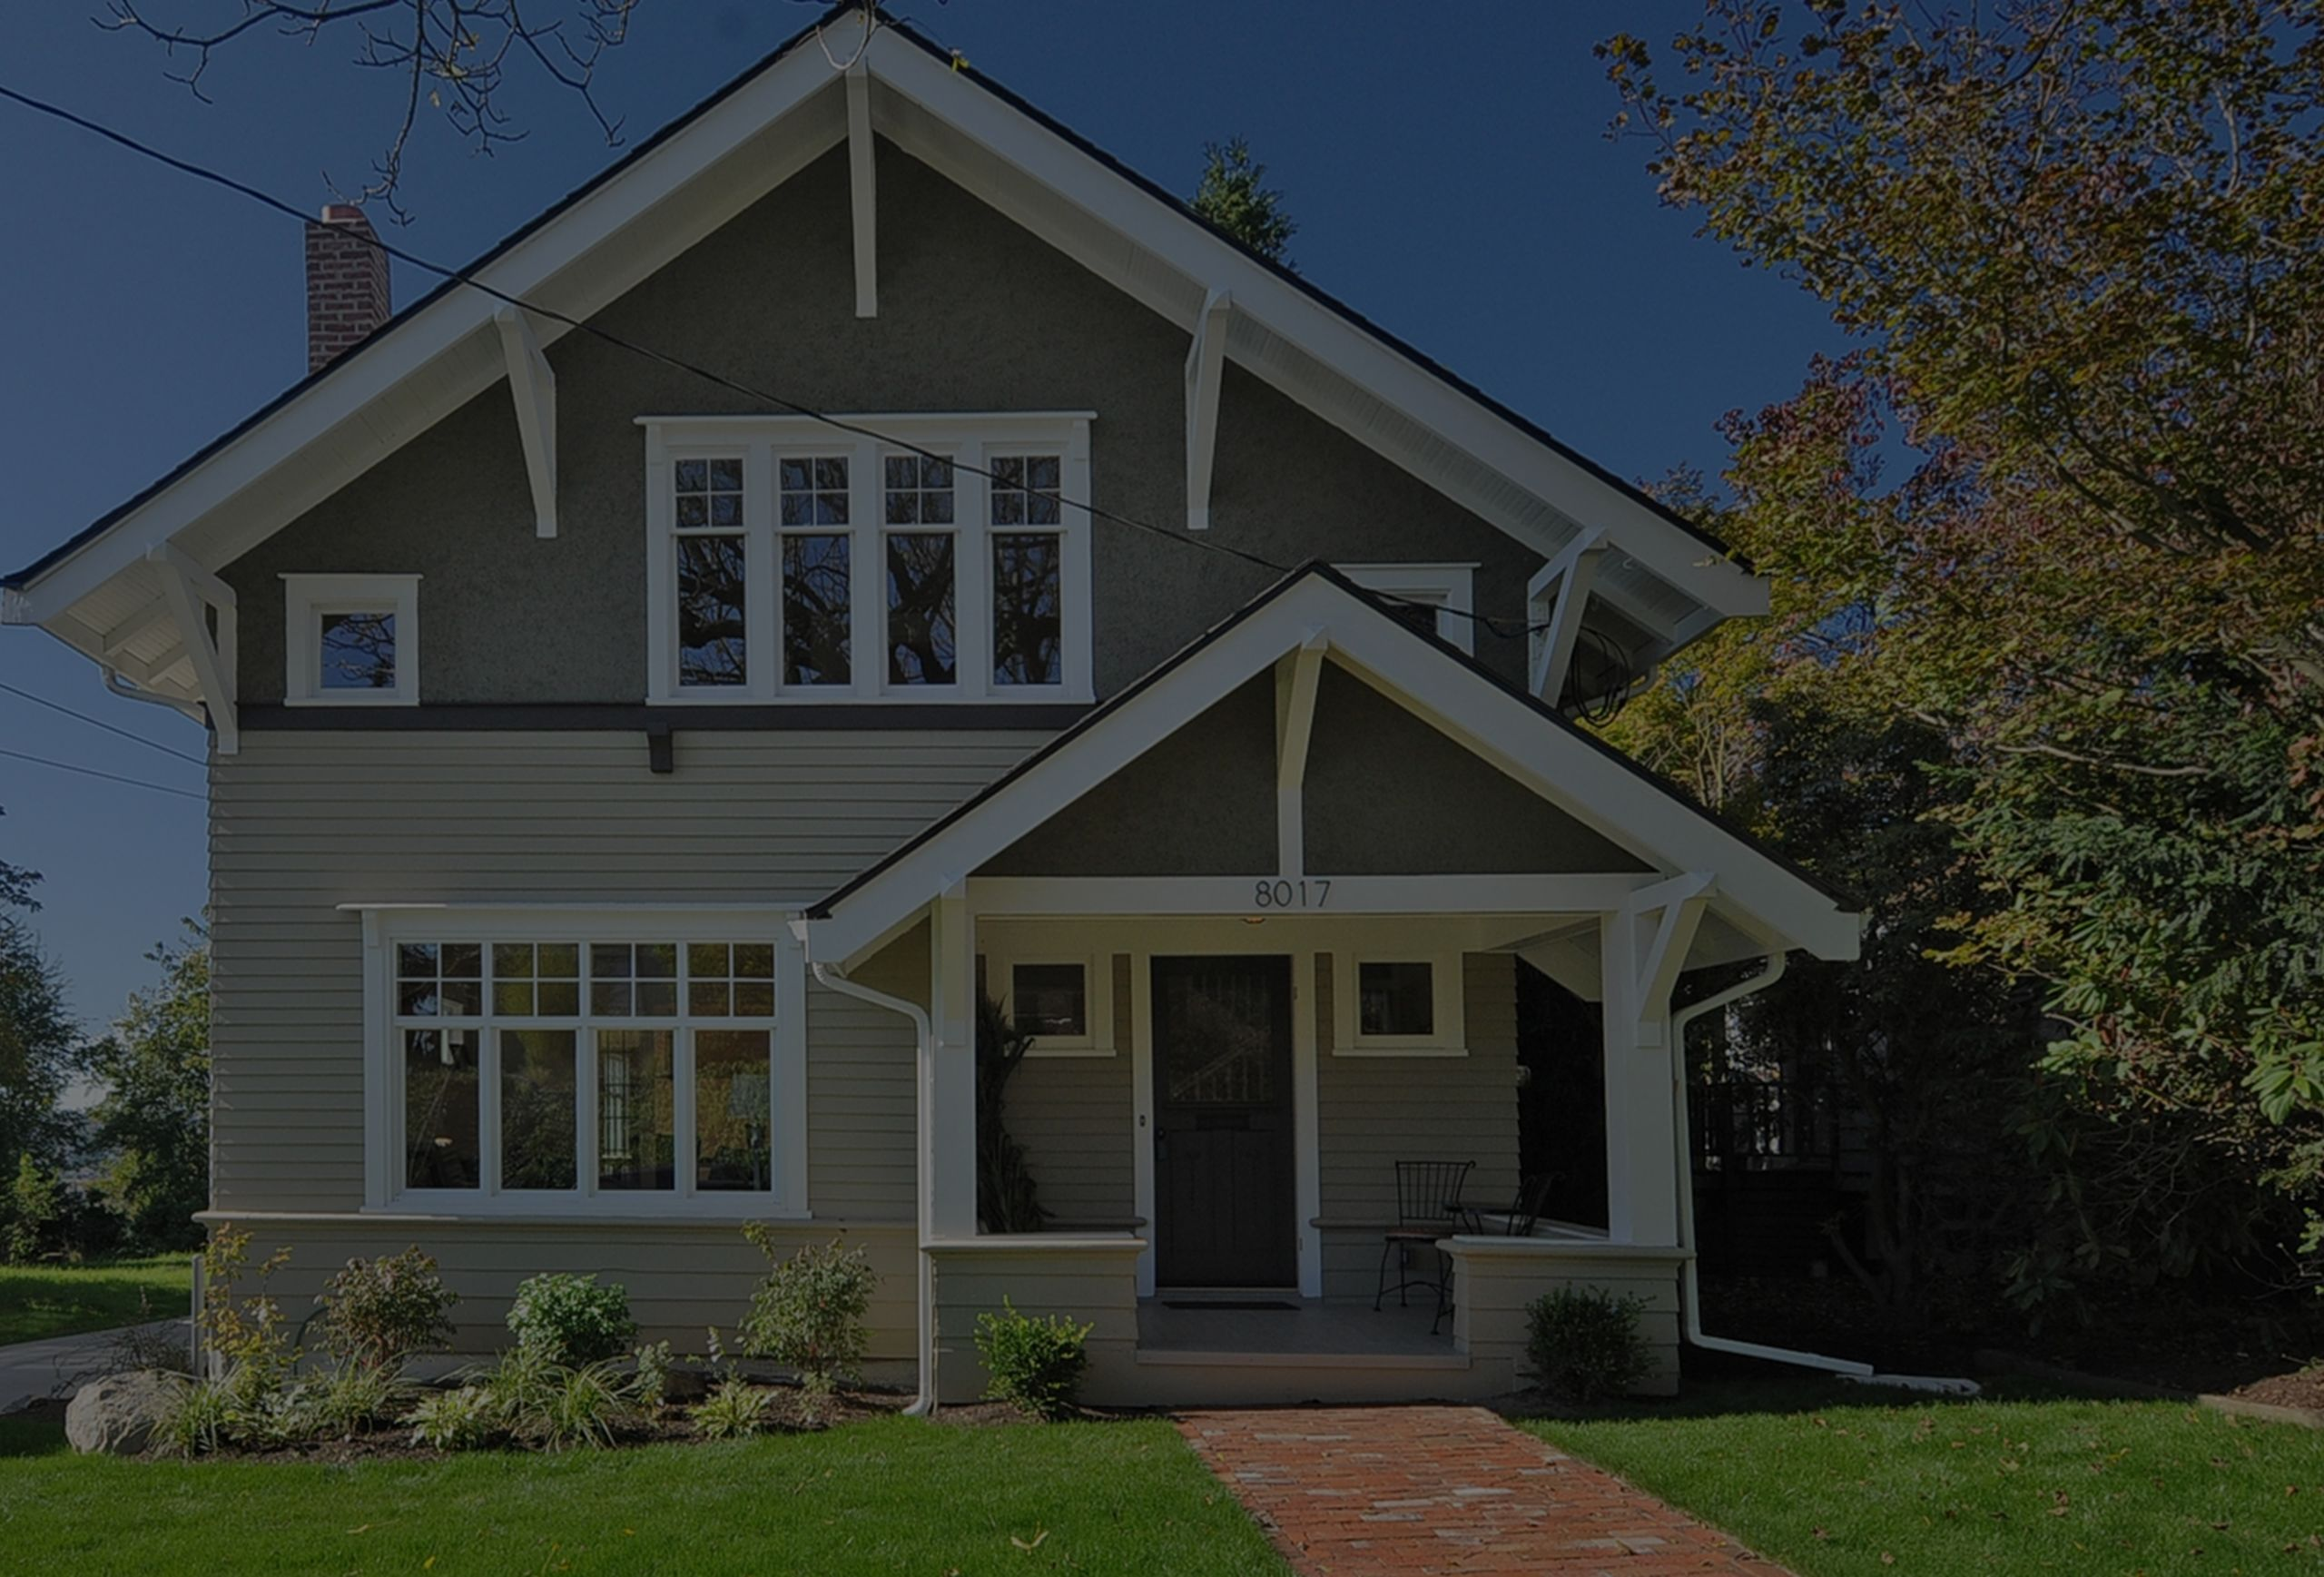 Ready to Sell? Move Up or Downsize.